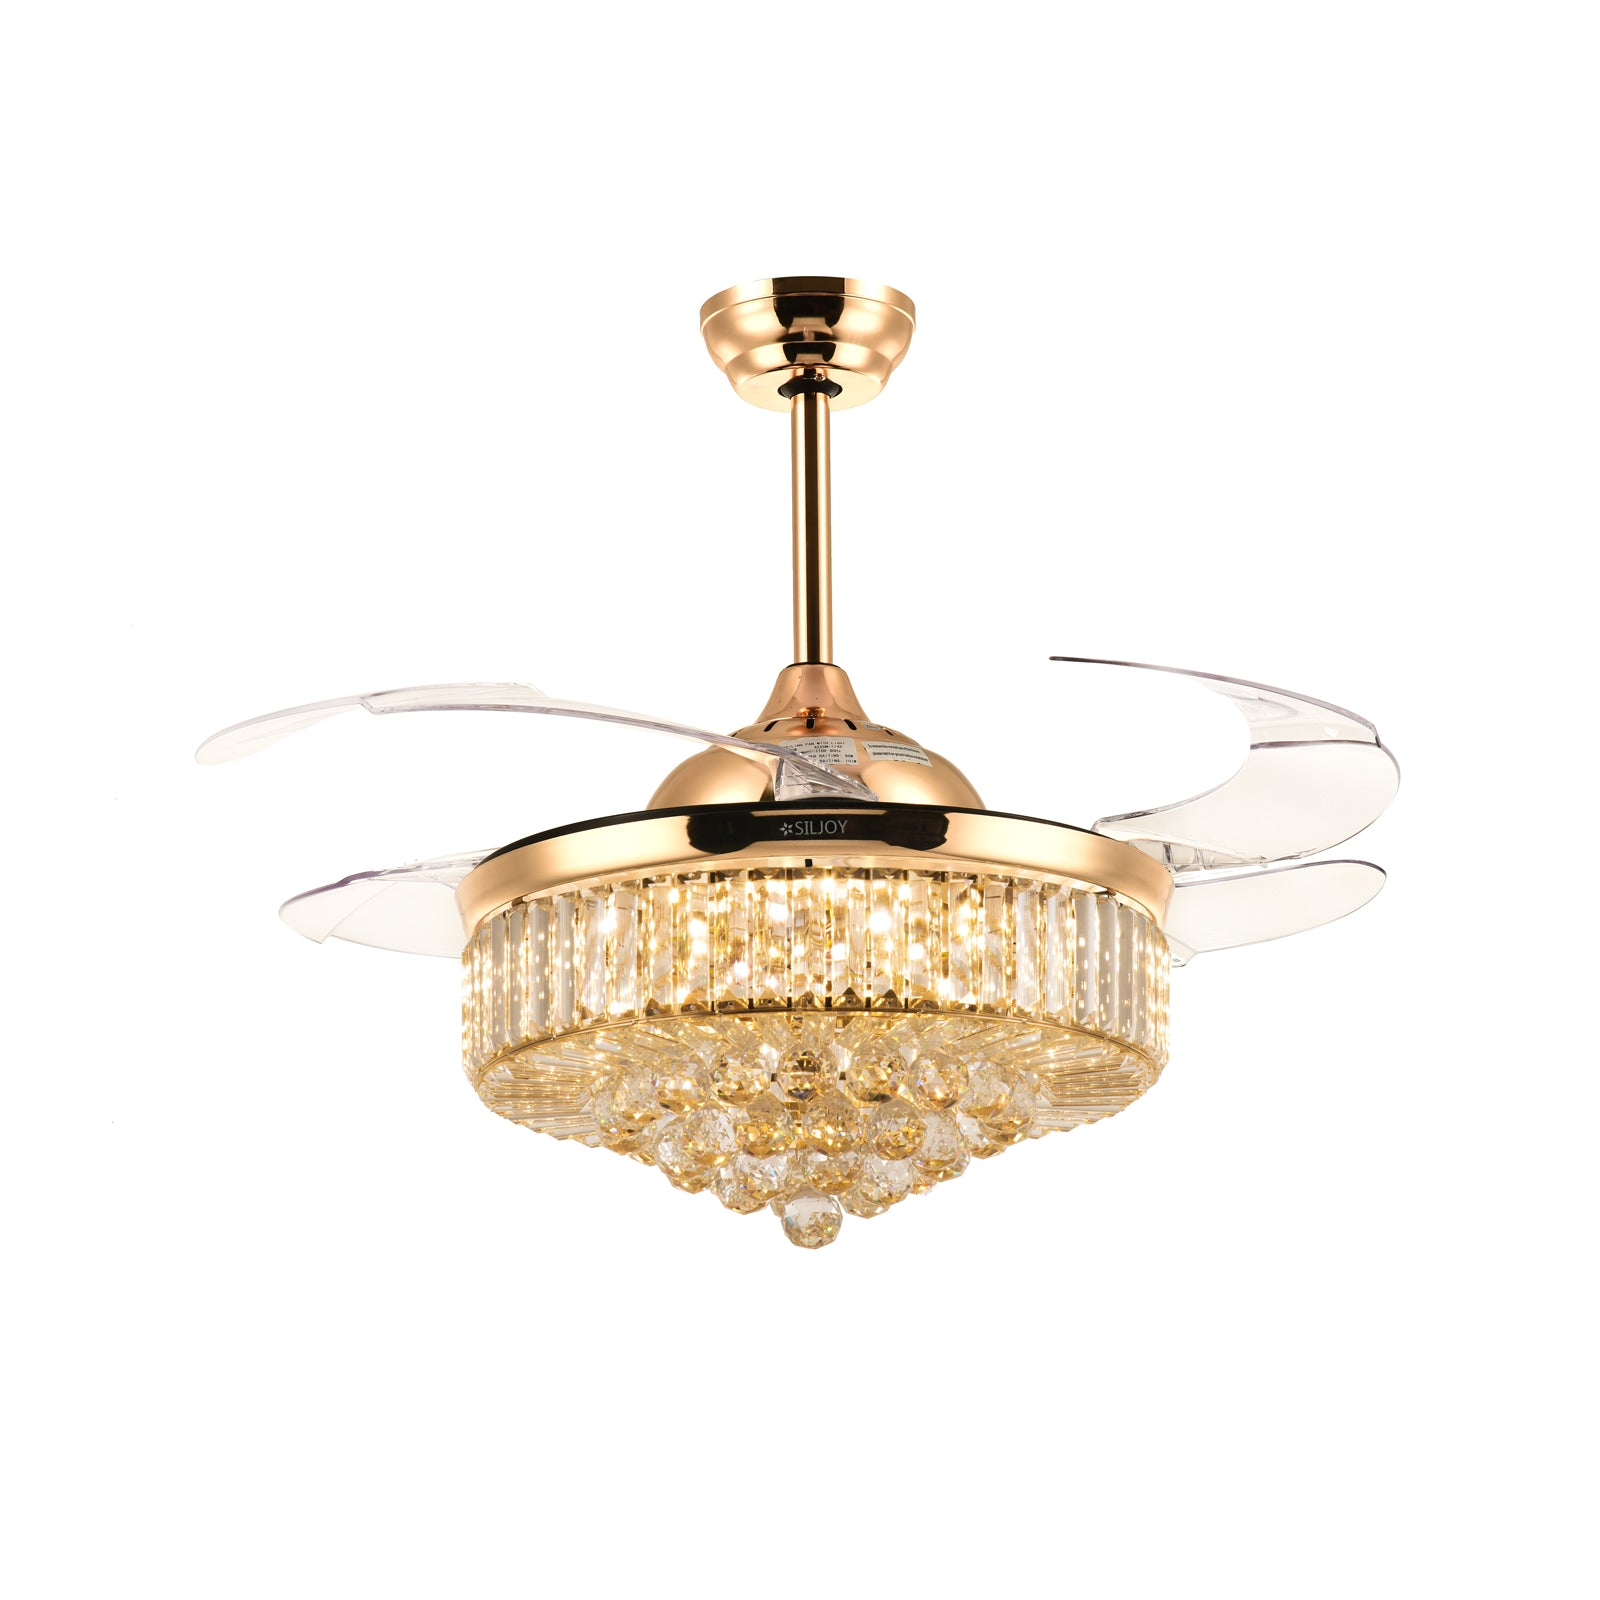 Gold Retractable Ceiling Fan   Chandelier Ceiling Fan With Blades Extended  Warm Light